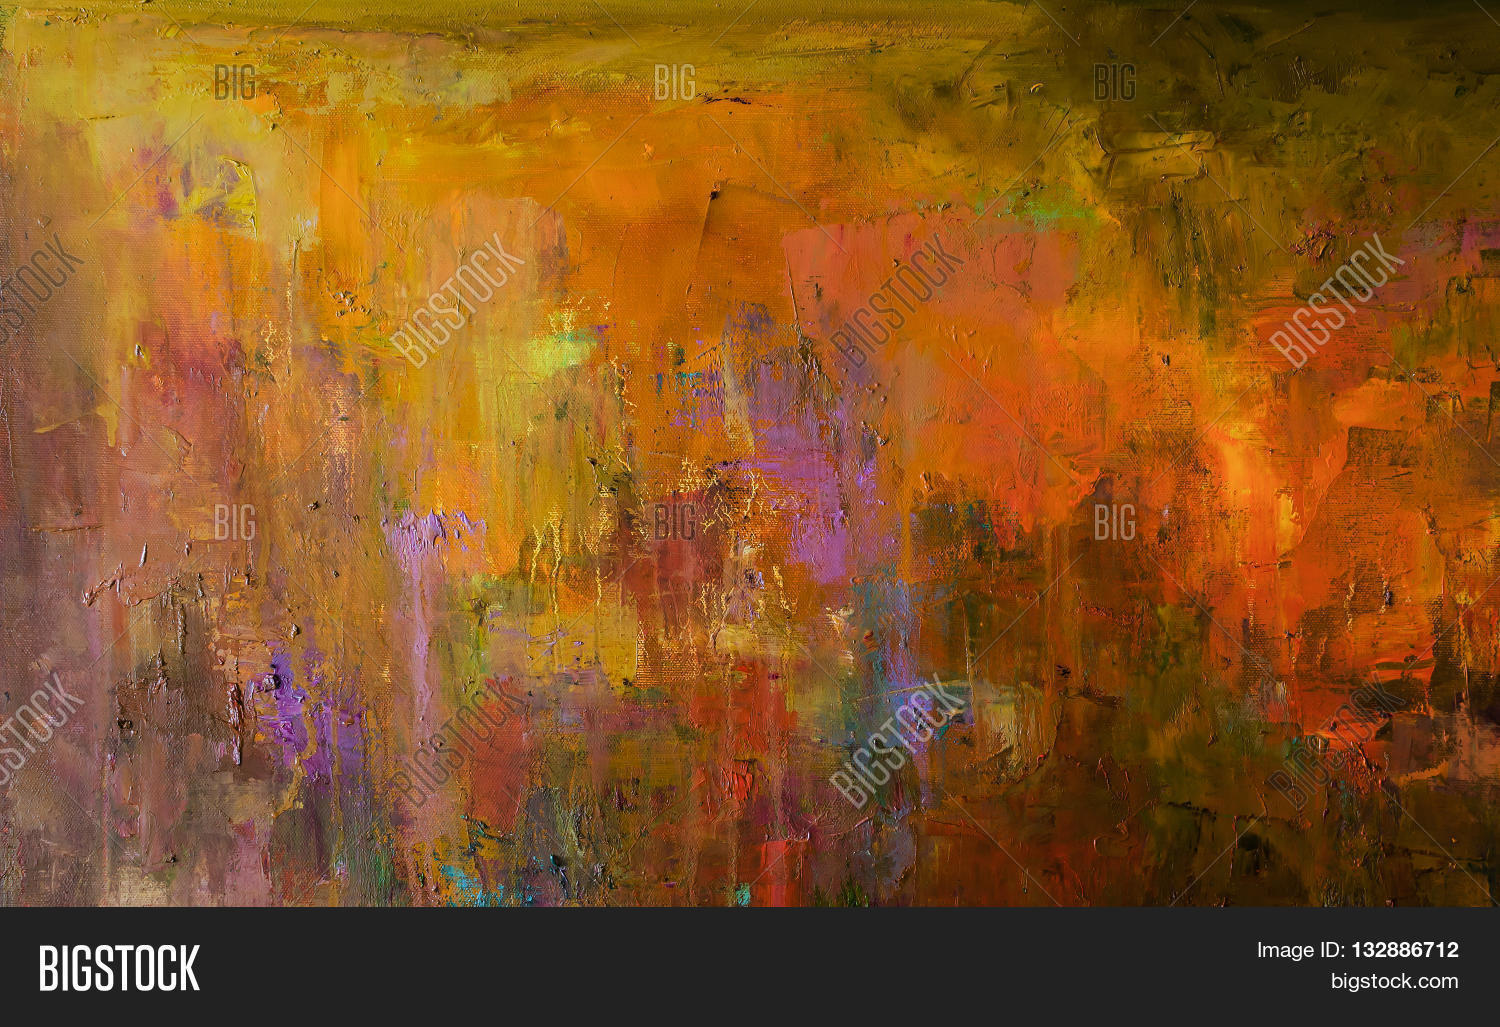 Abstract Oil Painting Image & Photo (Free Trial)